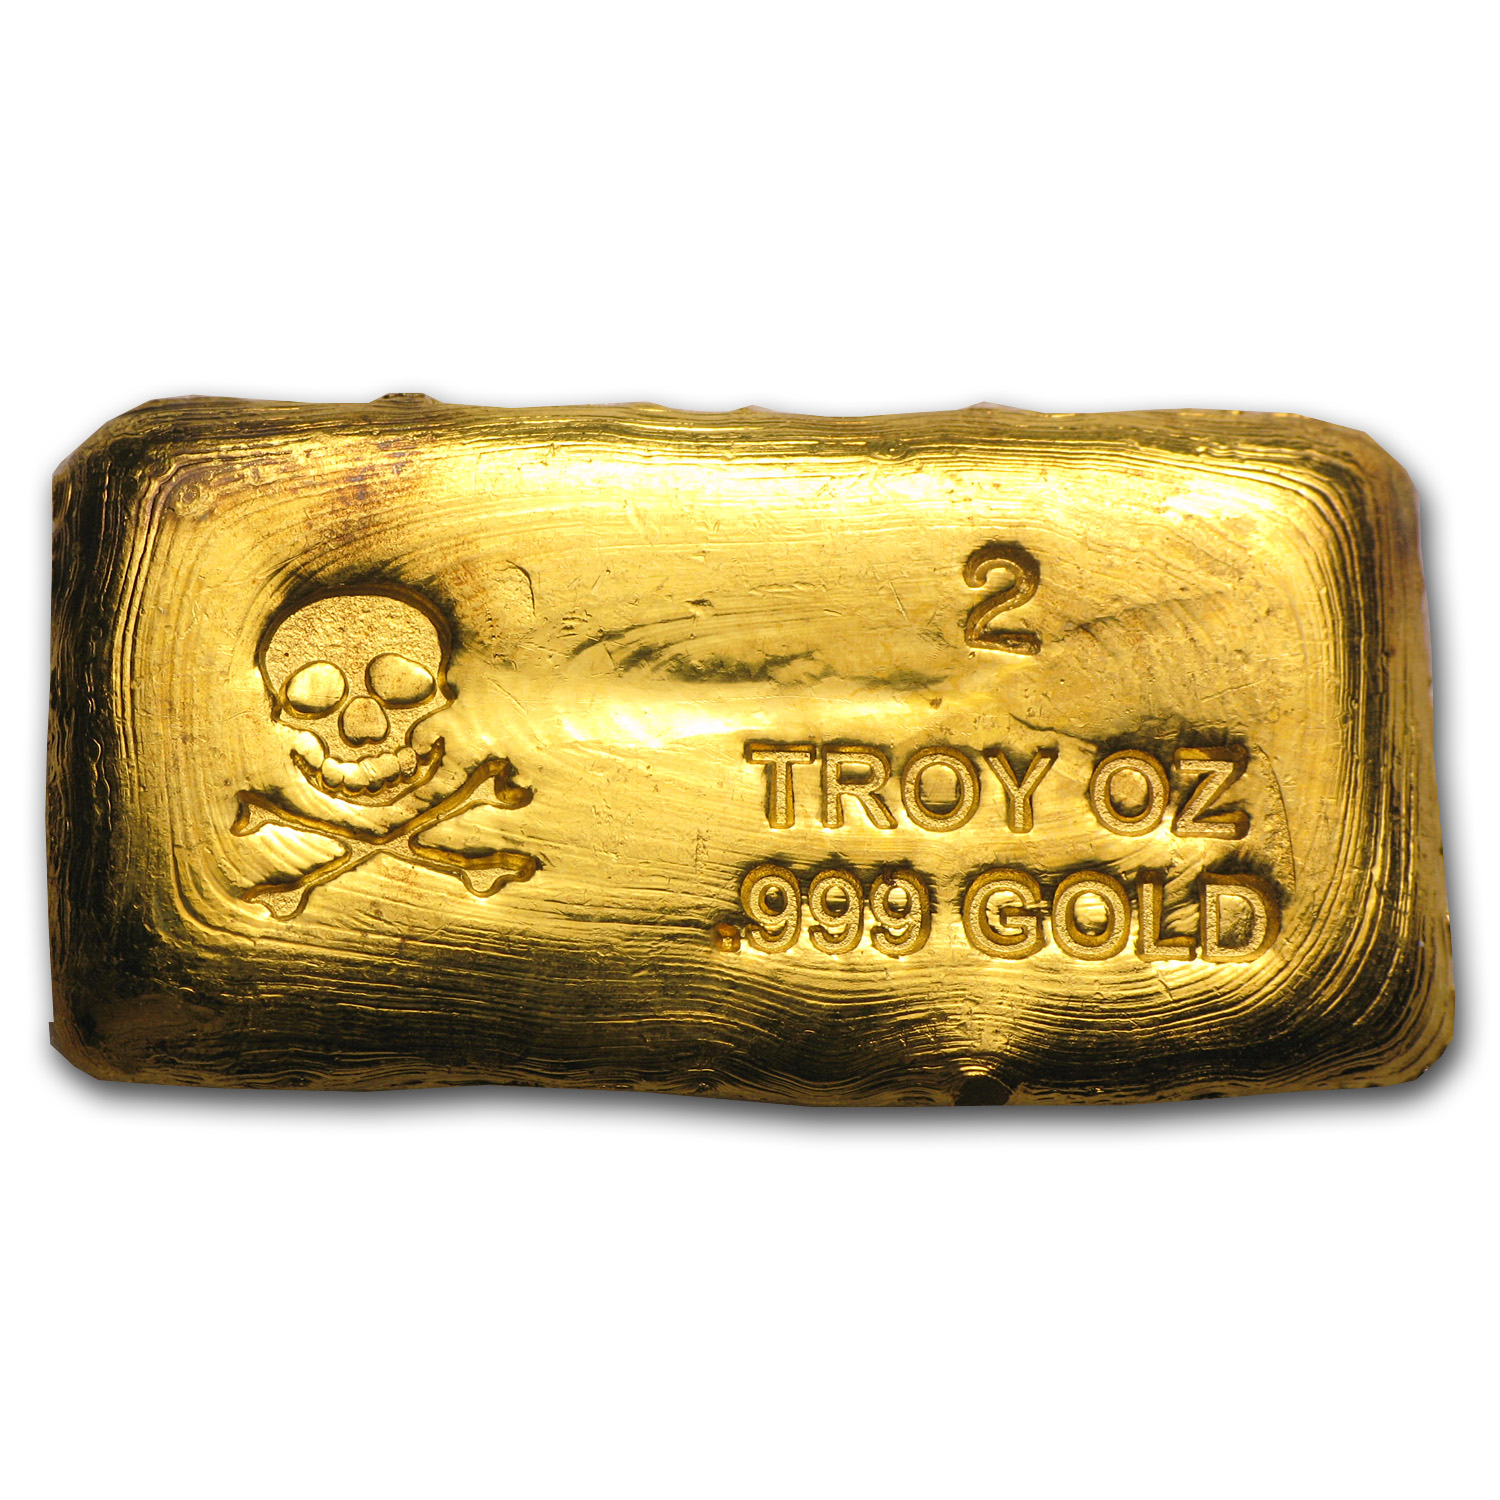 2 oz Gold Bar - Skull & Bones (PG&G)